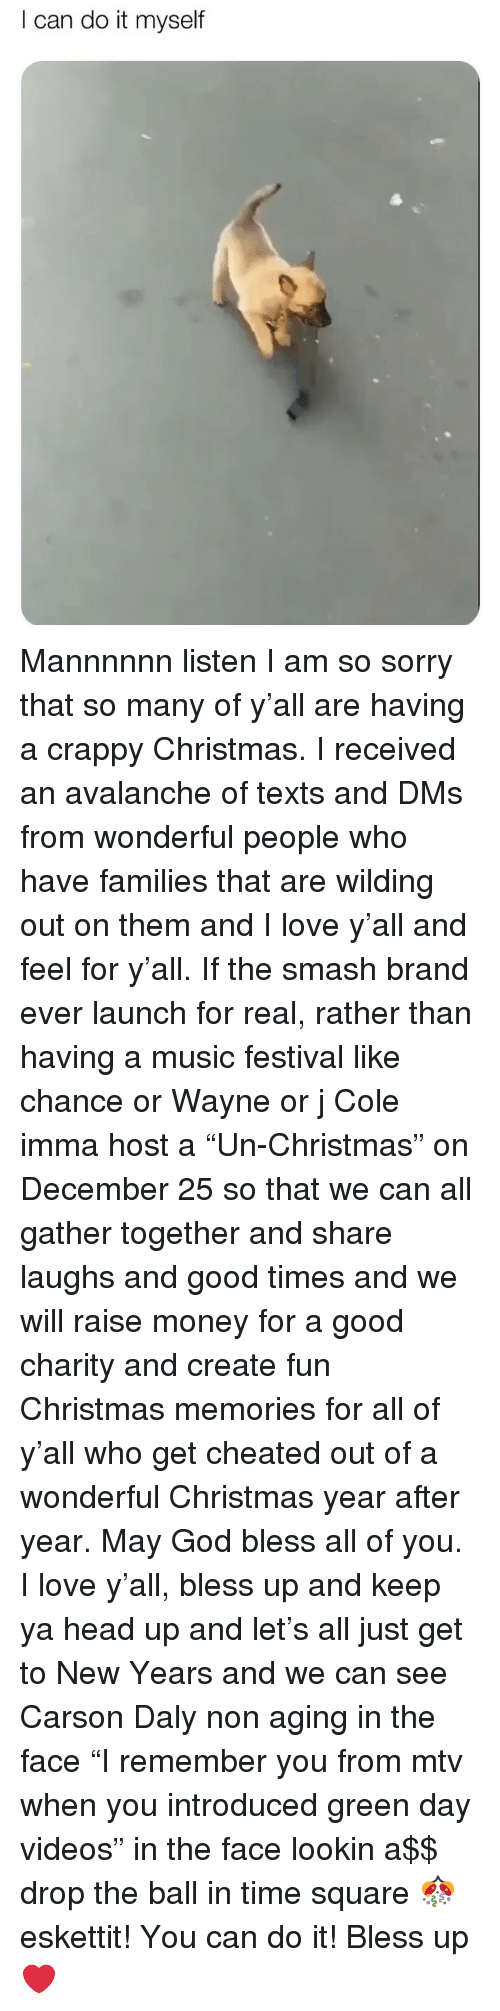 """Bless Up, Christmas, and God: I can do it myself Mannnnnn listen I am so sorry that so many of y'all are having a crappy Christmas. I received an avalanche of texts and DMs from wonderful people who have families that are wilding out on them and I love y'all and feel for y'all. If the smash brand ever launch for real, rather than having a music festival like chance or Wayne or j Cole imma host a """"Un-Christmas"""" on December 25 so that we can all gather together and share laughs and good times and we will raise money for a good charity and create fun Christmas memories for all of y'all who get cheated out of a wonderful Christmas year after year. May God bless all of you. I love y'all, bless up and keep ya head up and let's all just get to New Years and we can see Carson Daly non aging in the face """"I remember you from mtv when you introduced green day videos"""" in the face lookin a$$ drop the ball in time square 🎊 eskettit! You can do it! Bless up ❤️"""